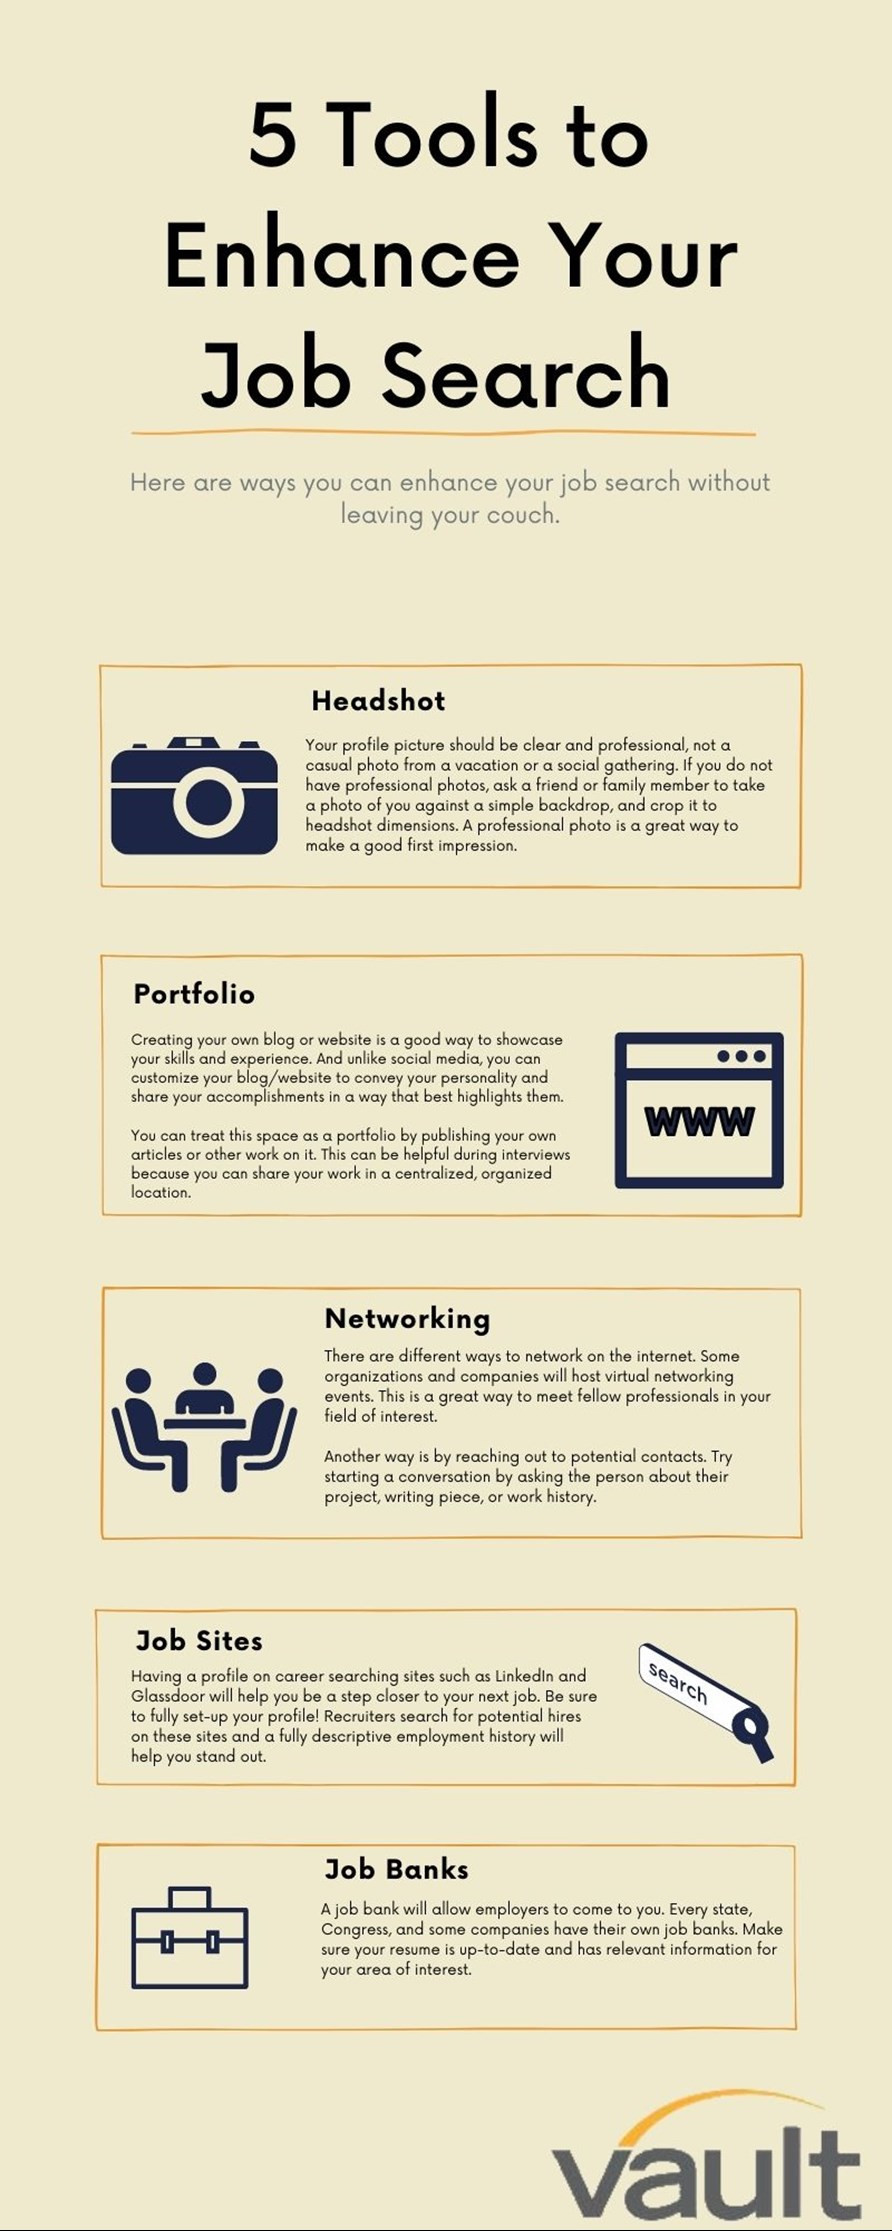 Infographic detailing 5 tools to enhance your job search